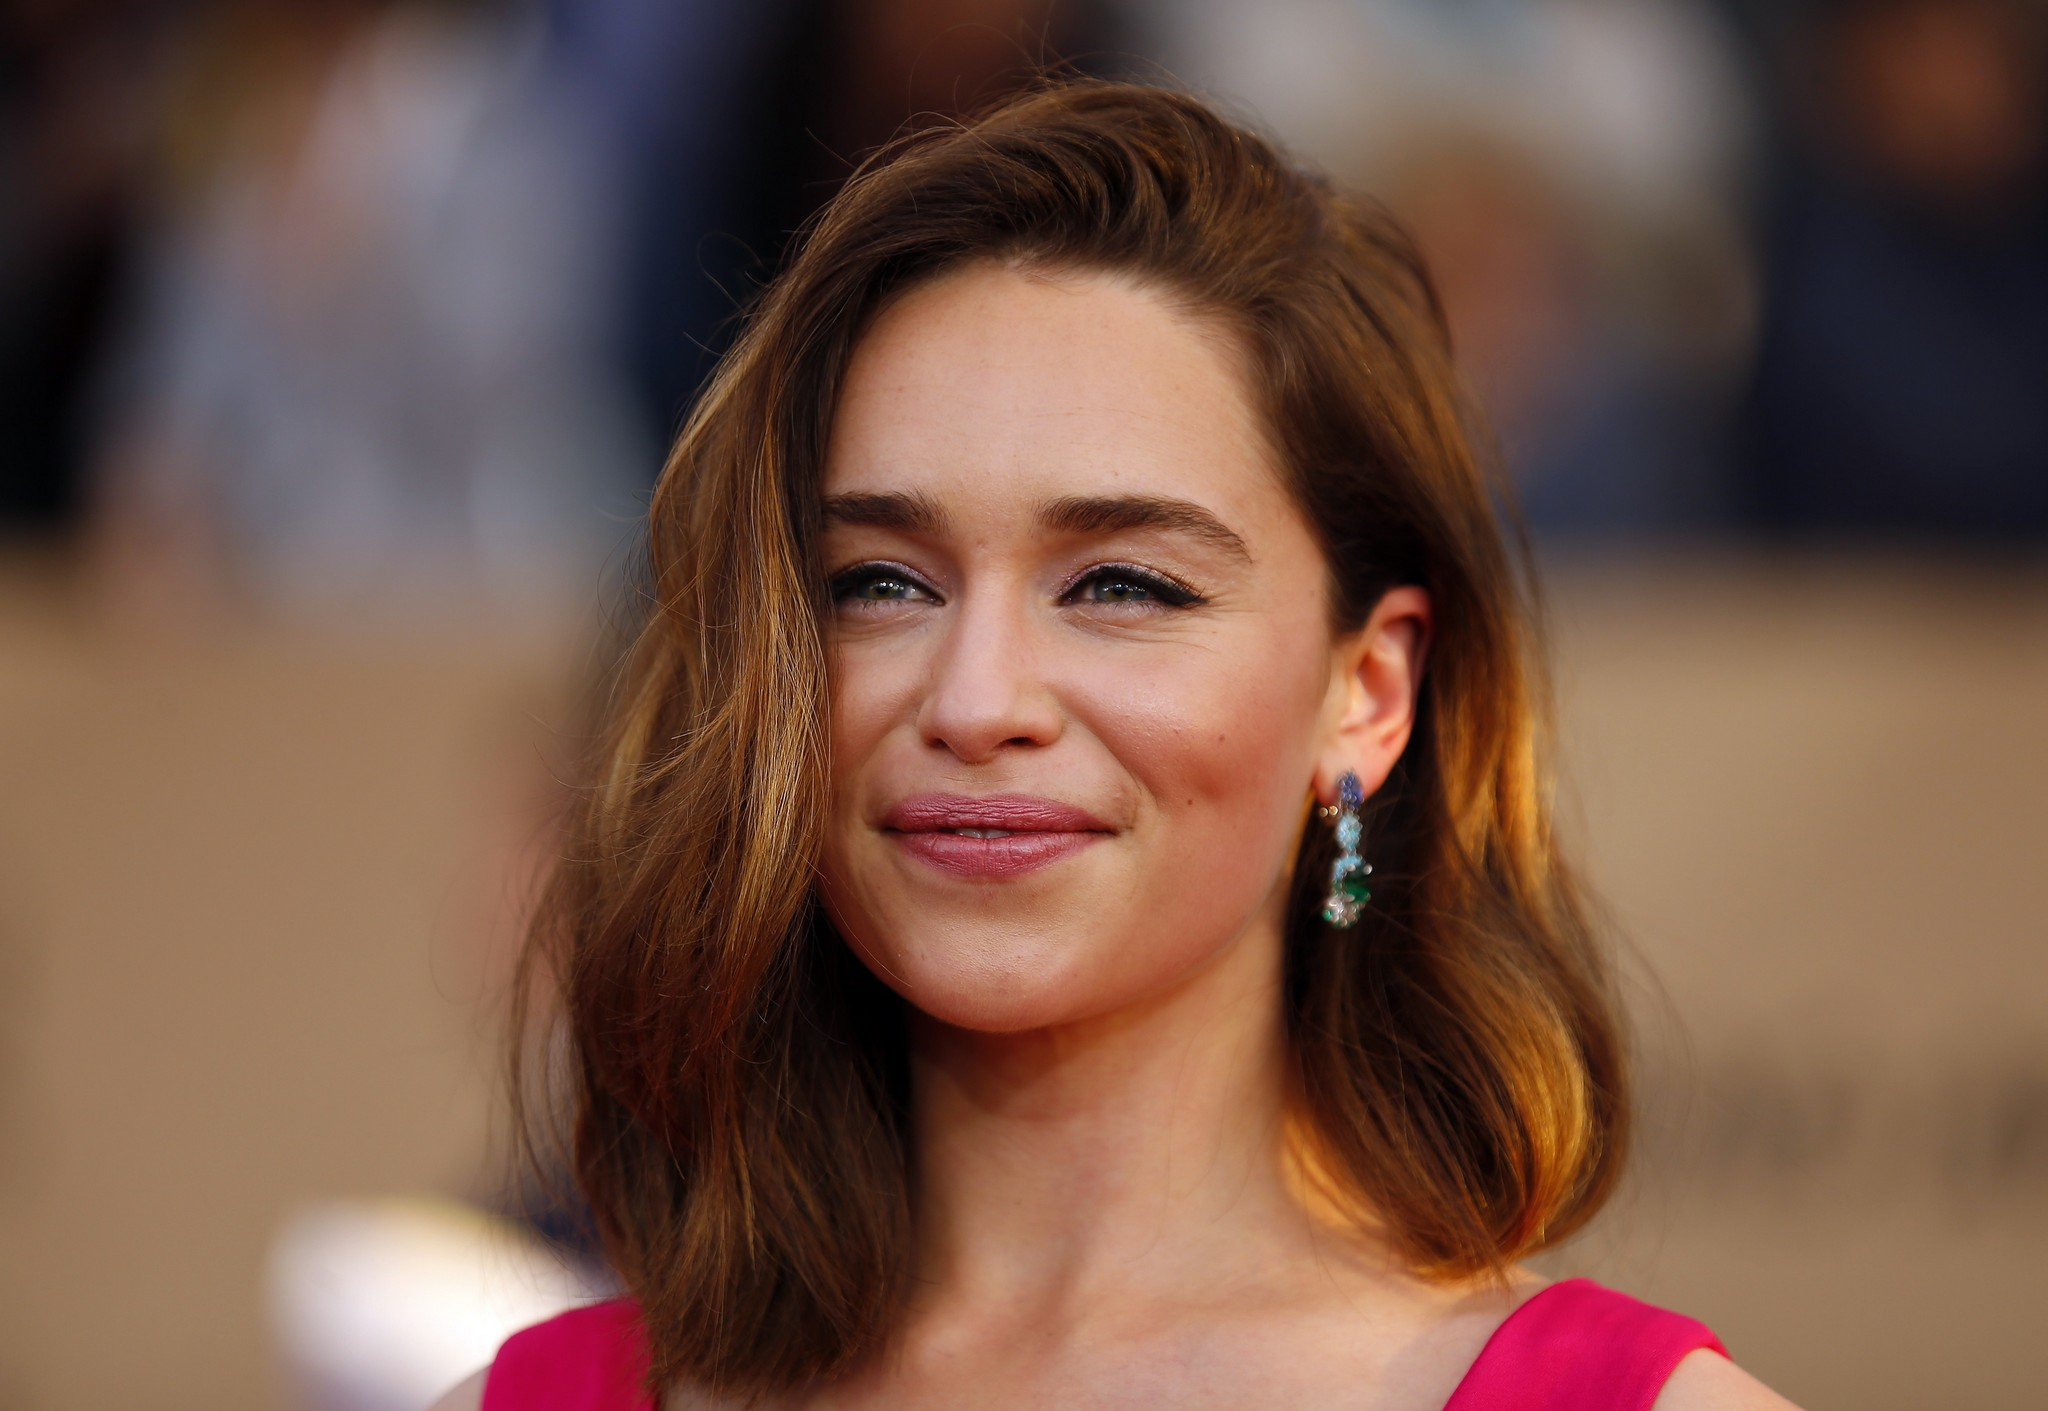 fantastic emilia clarke lovely smiling face look still free desktop mobile hd background images